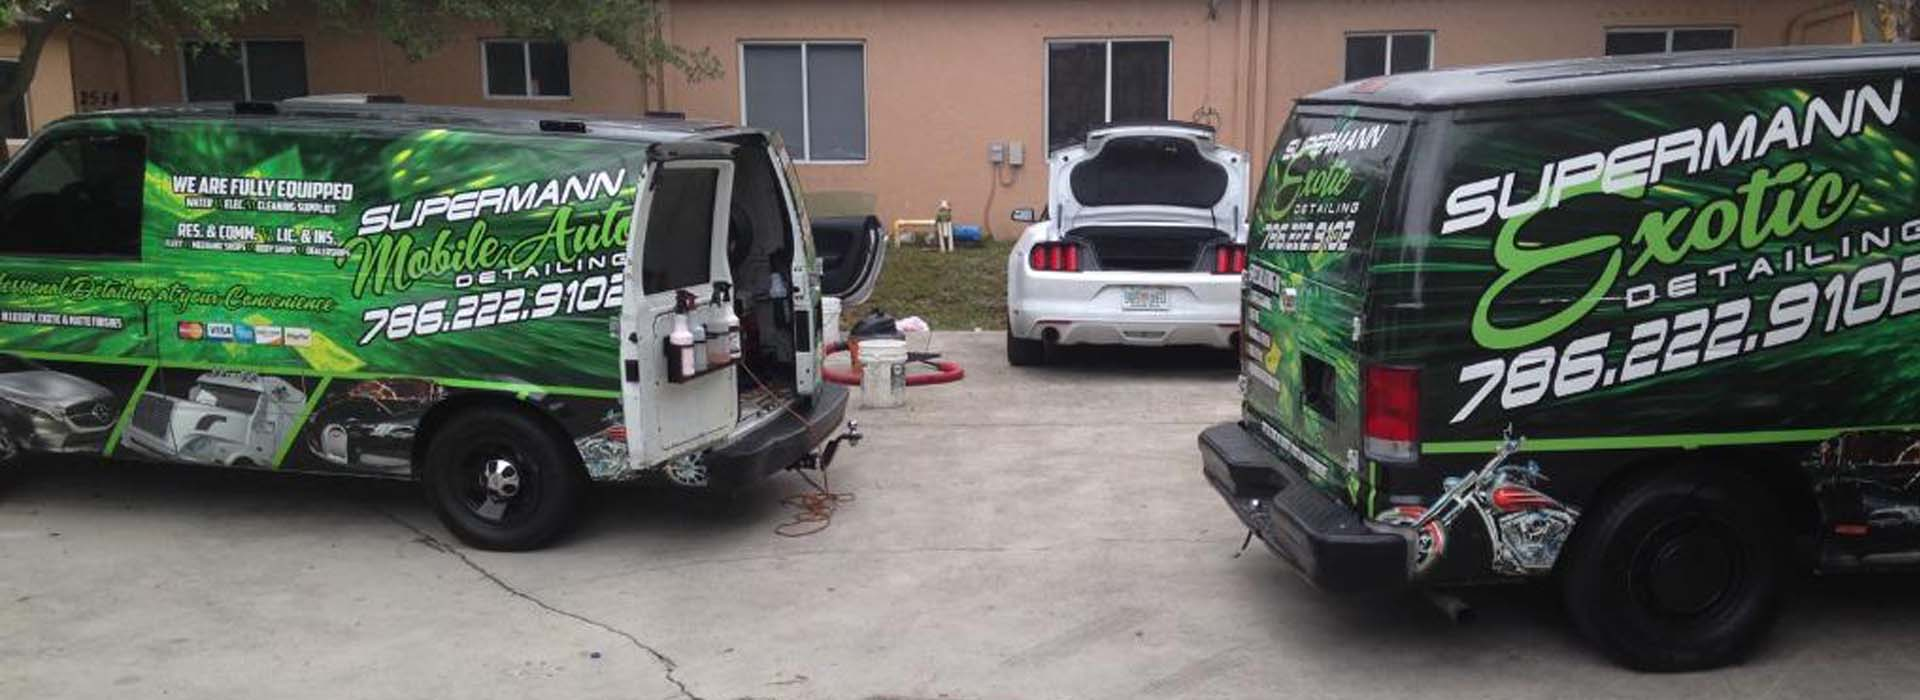 Home Pembroke Pines Car Wash Auto Detailing And Mobile Car Wash